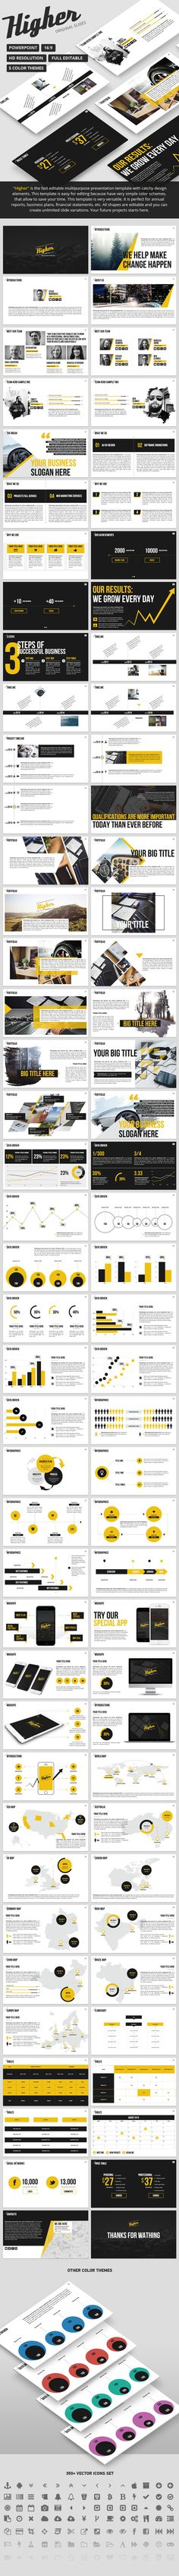 Higher - Creative PowerPoint Template. Download here: http://graphicriver.net/item/higher-creative-powerpoint-template-/15182057?ref=ksioks